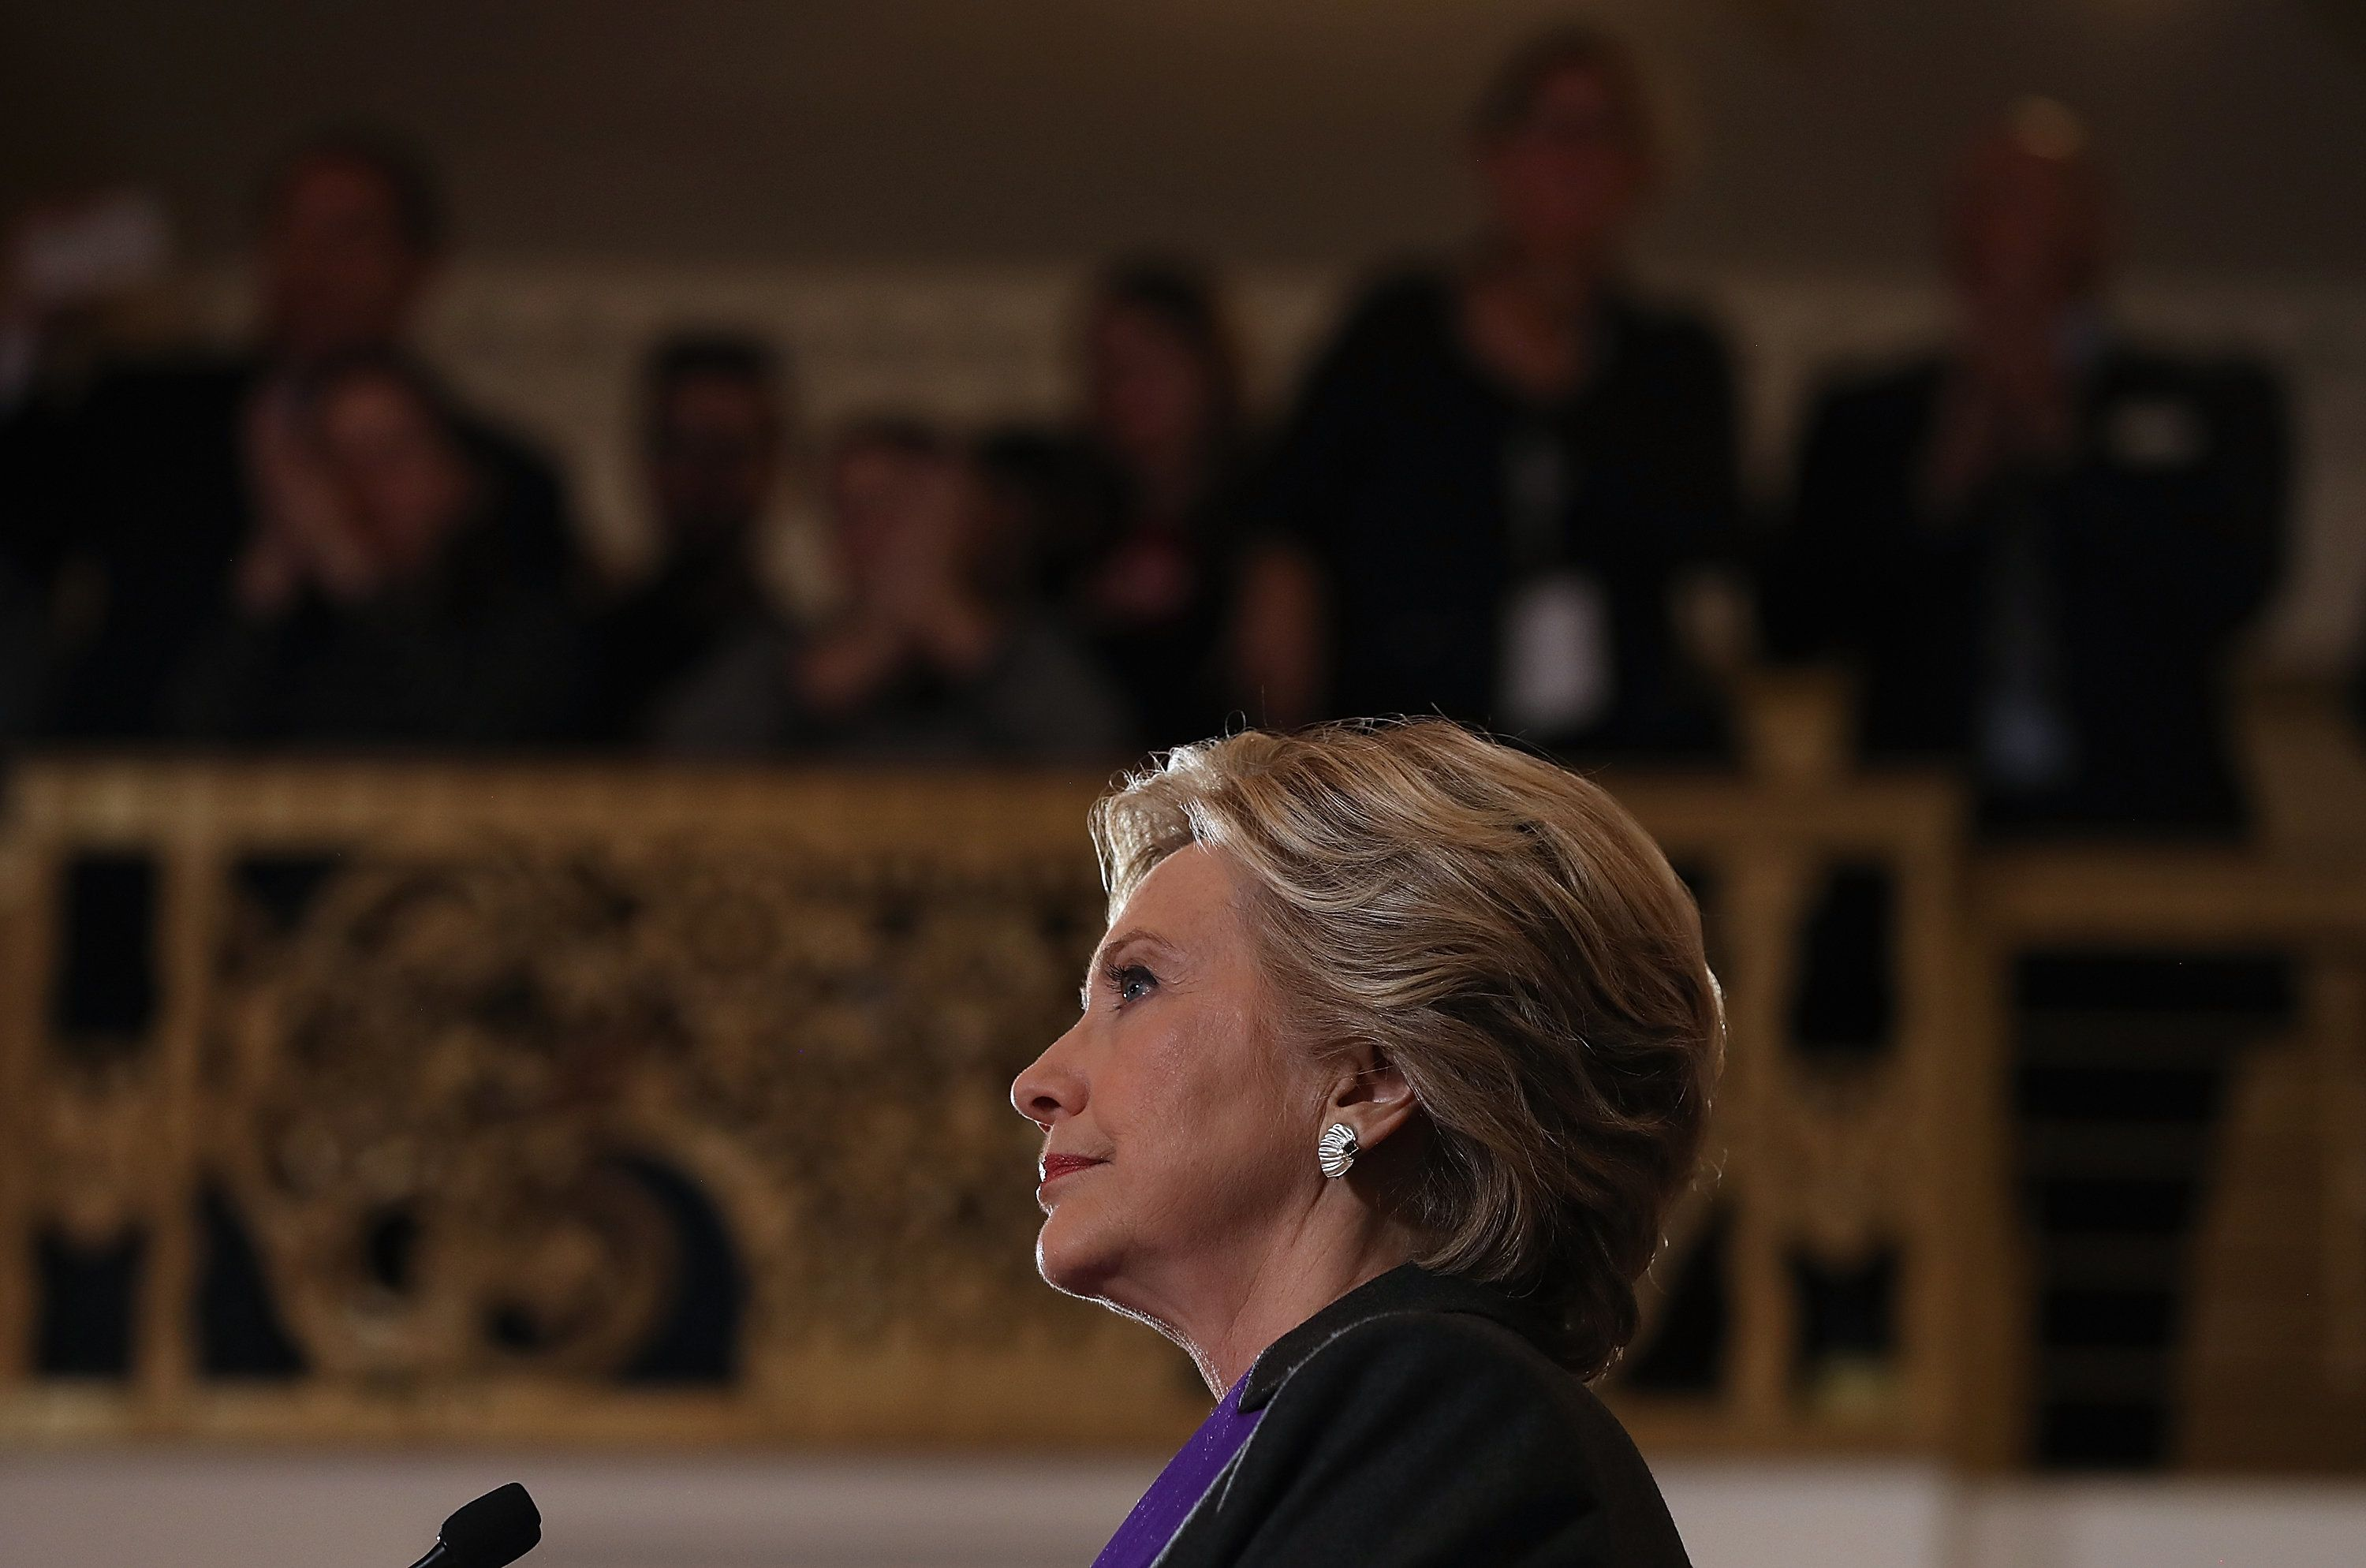 Former Secretary of State Hillary Clinton speaks during a news conference at the New Yorker Hotel on November 9, 2016 in New